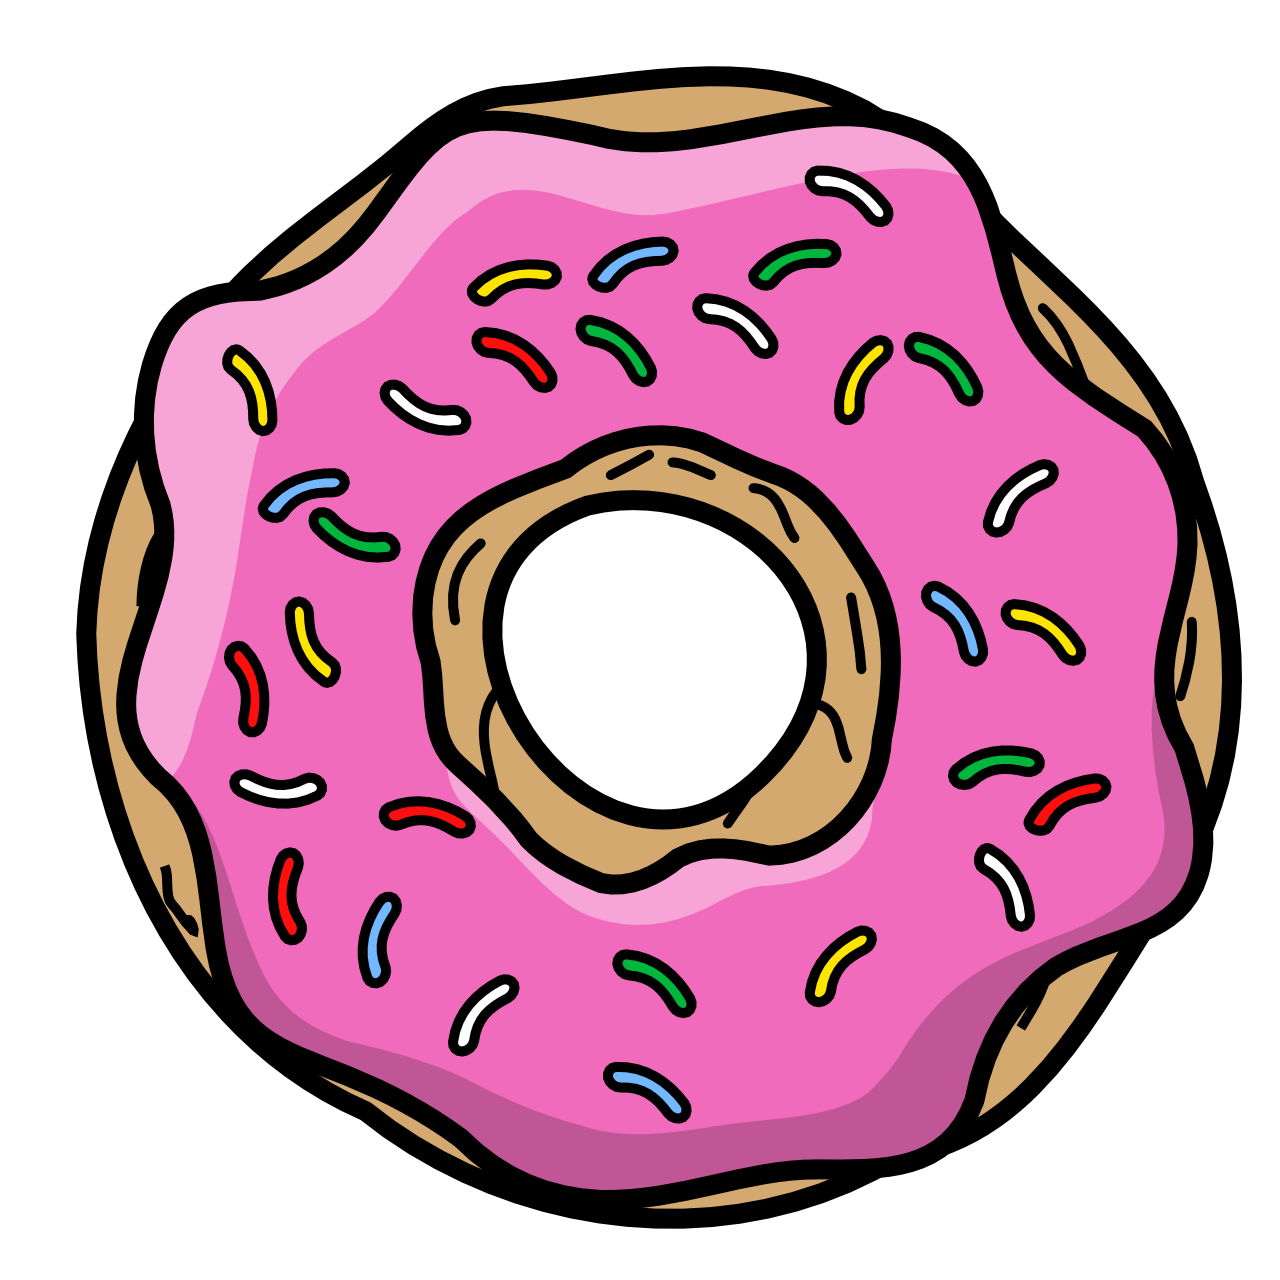 banner black and white Vector donut transparent. Donuts clipart video game